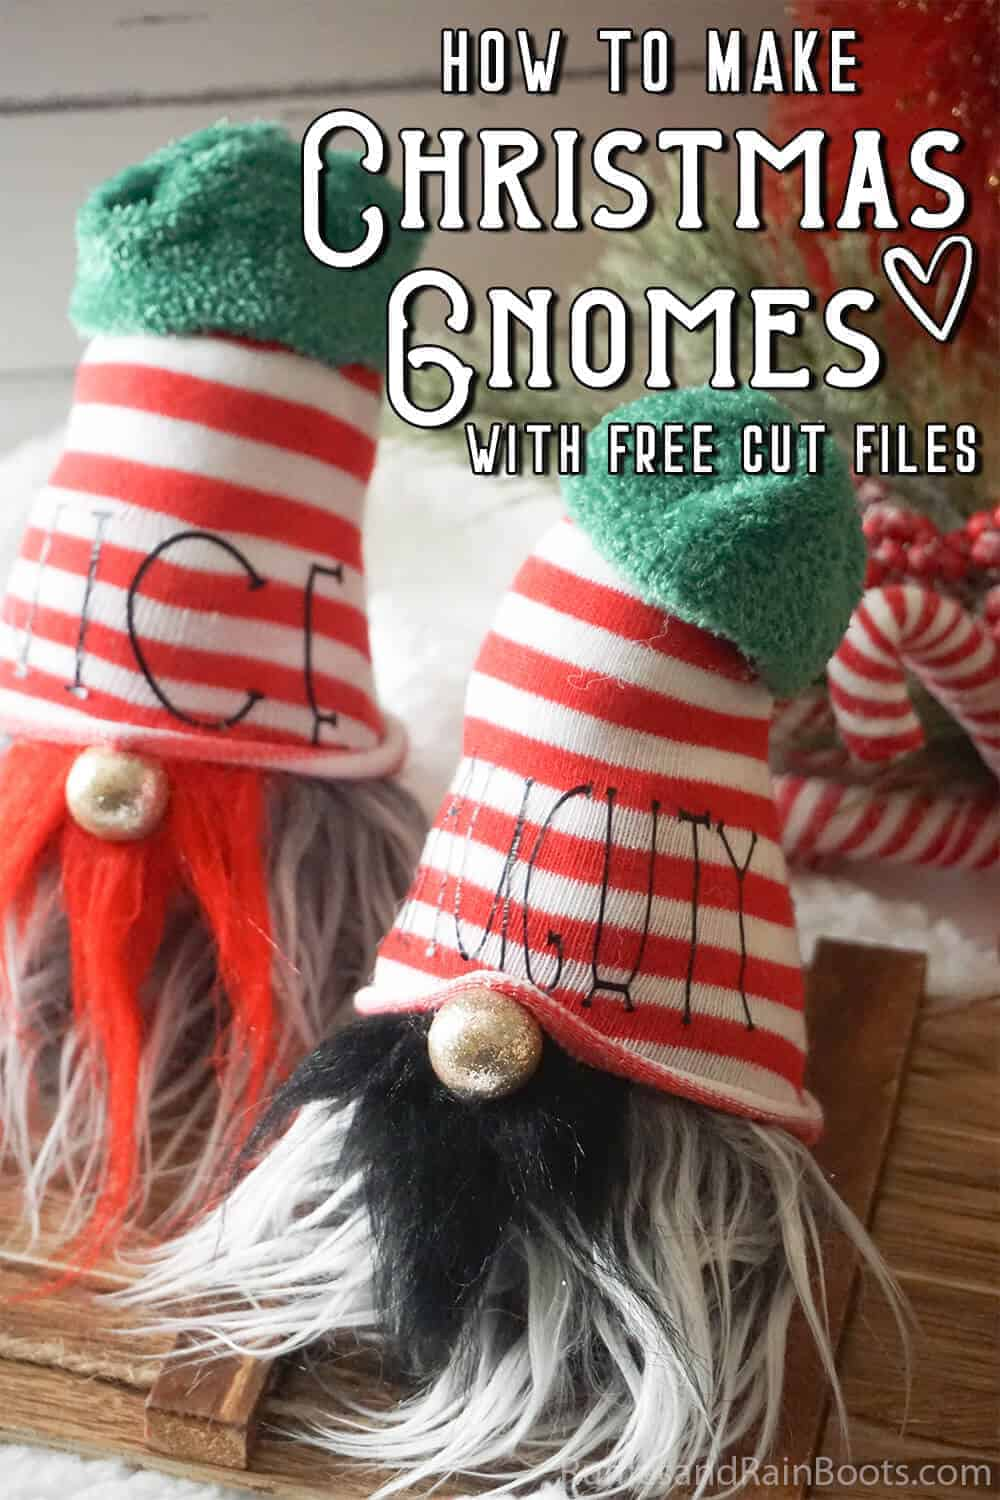 two naughty and nice gnomes with text which reads how to make christmas gnomes with a free cut file